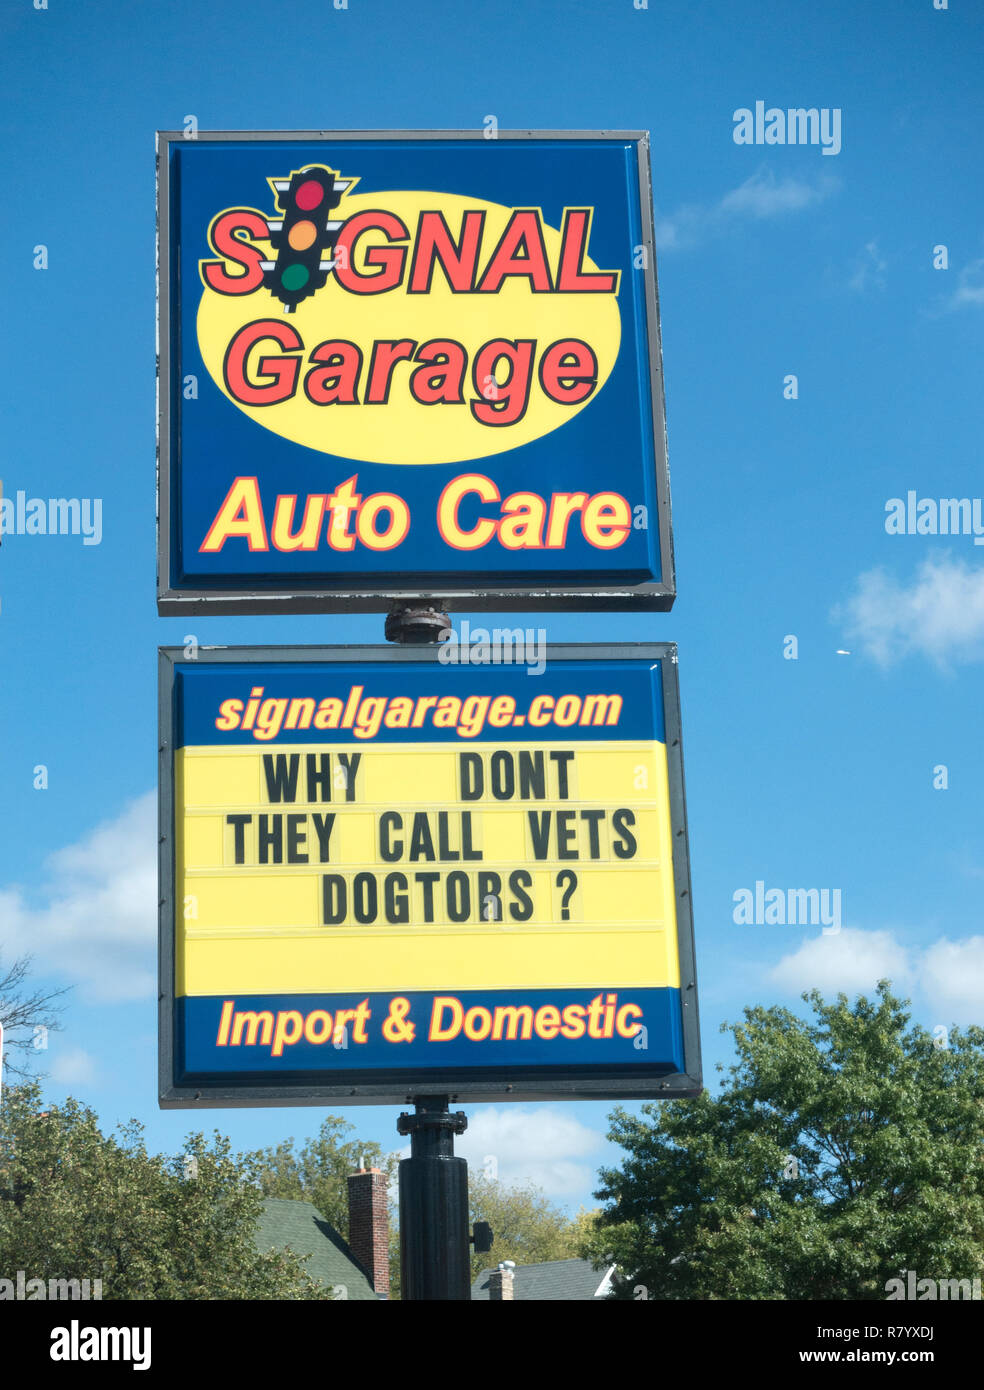 Signal Garage has a clever saying on the sign advertising the garage: 'Why don't they call vets dogtors'. St Paul Minnesota MN USA - Stock Image